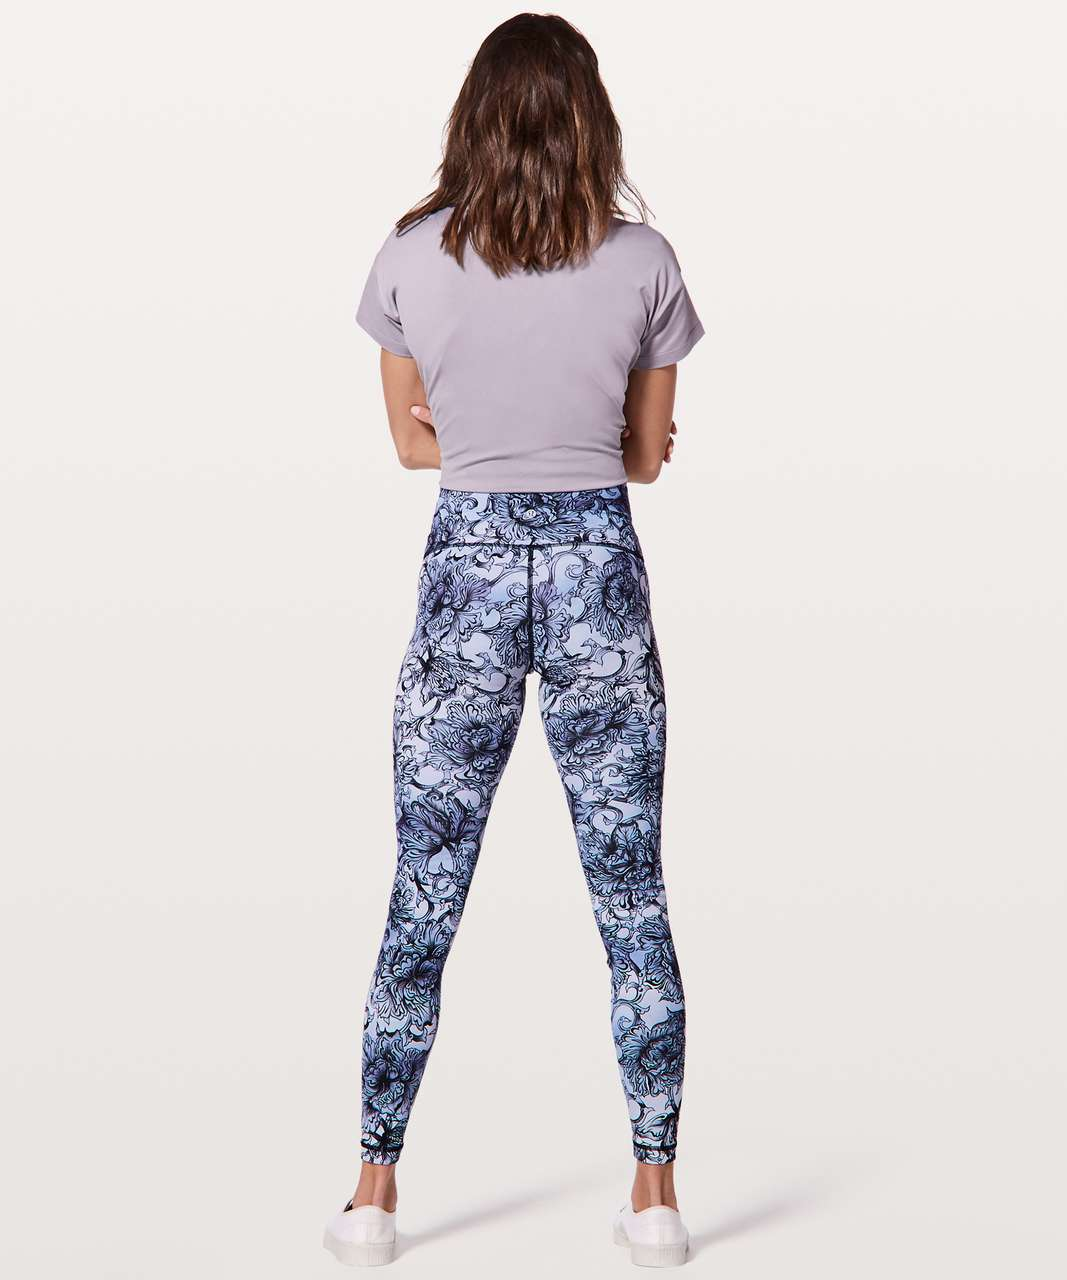 "Lululemon Wunder Under Hi-Rise Tight 28"" - Hanakotoba Starlight Multi"